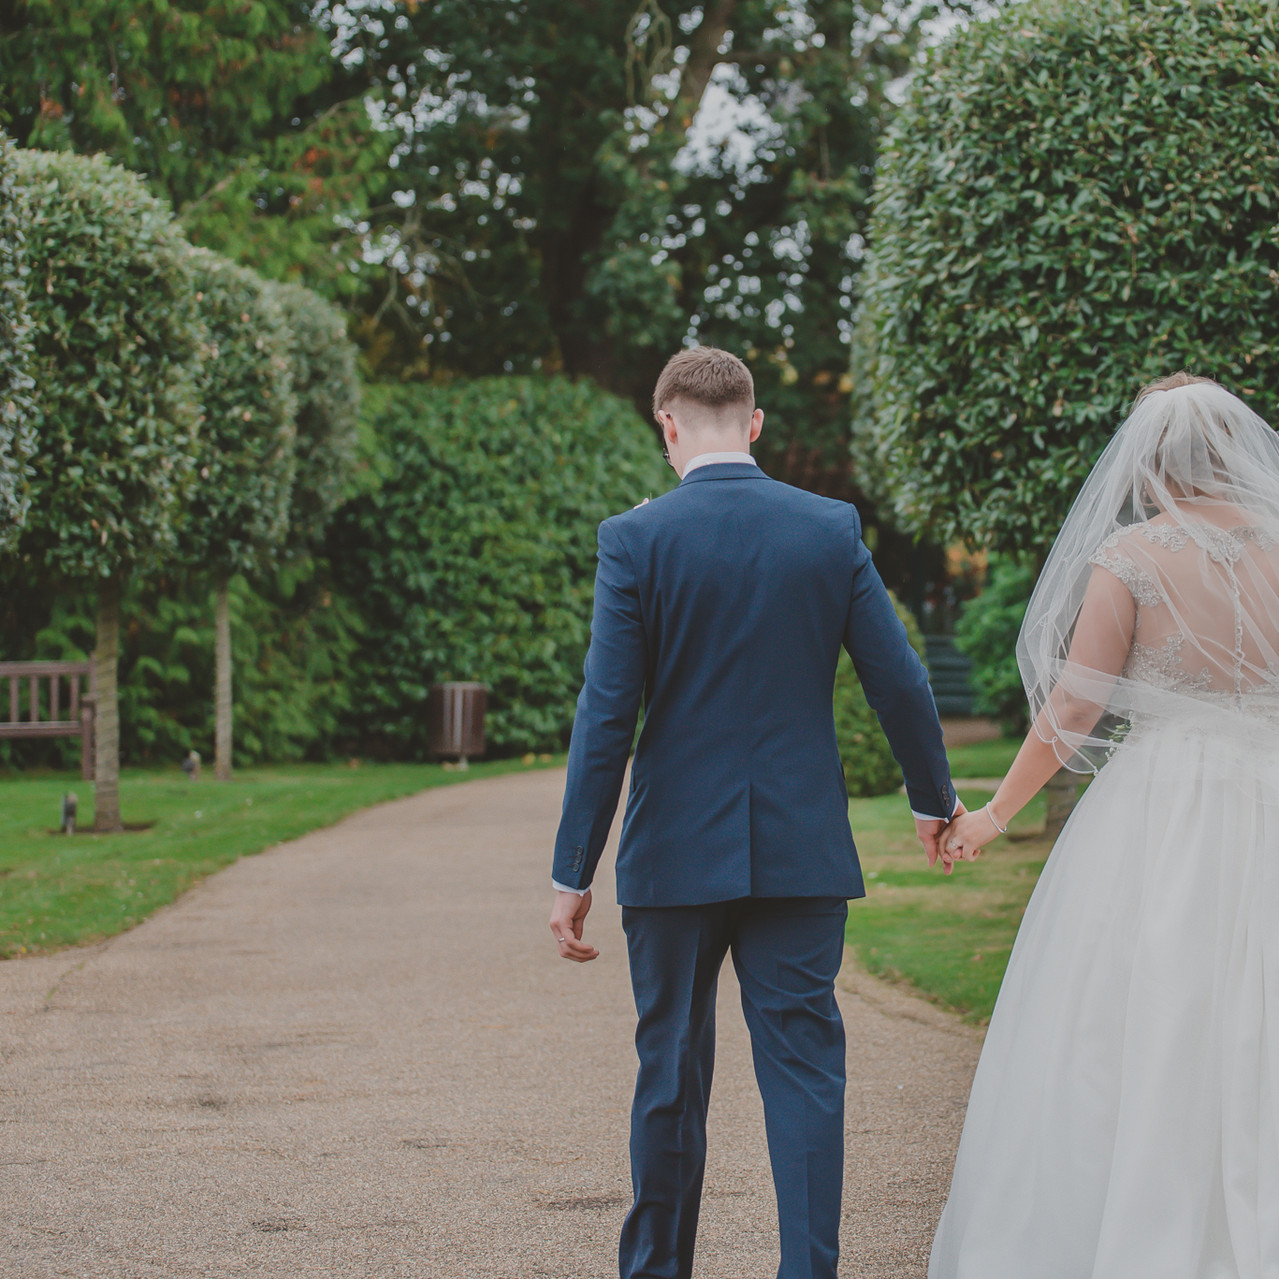 Fay Wedding - Thursford Collection at the Garden Pavilion, Norfolk. And we are done!